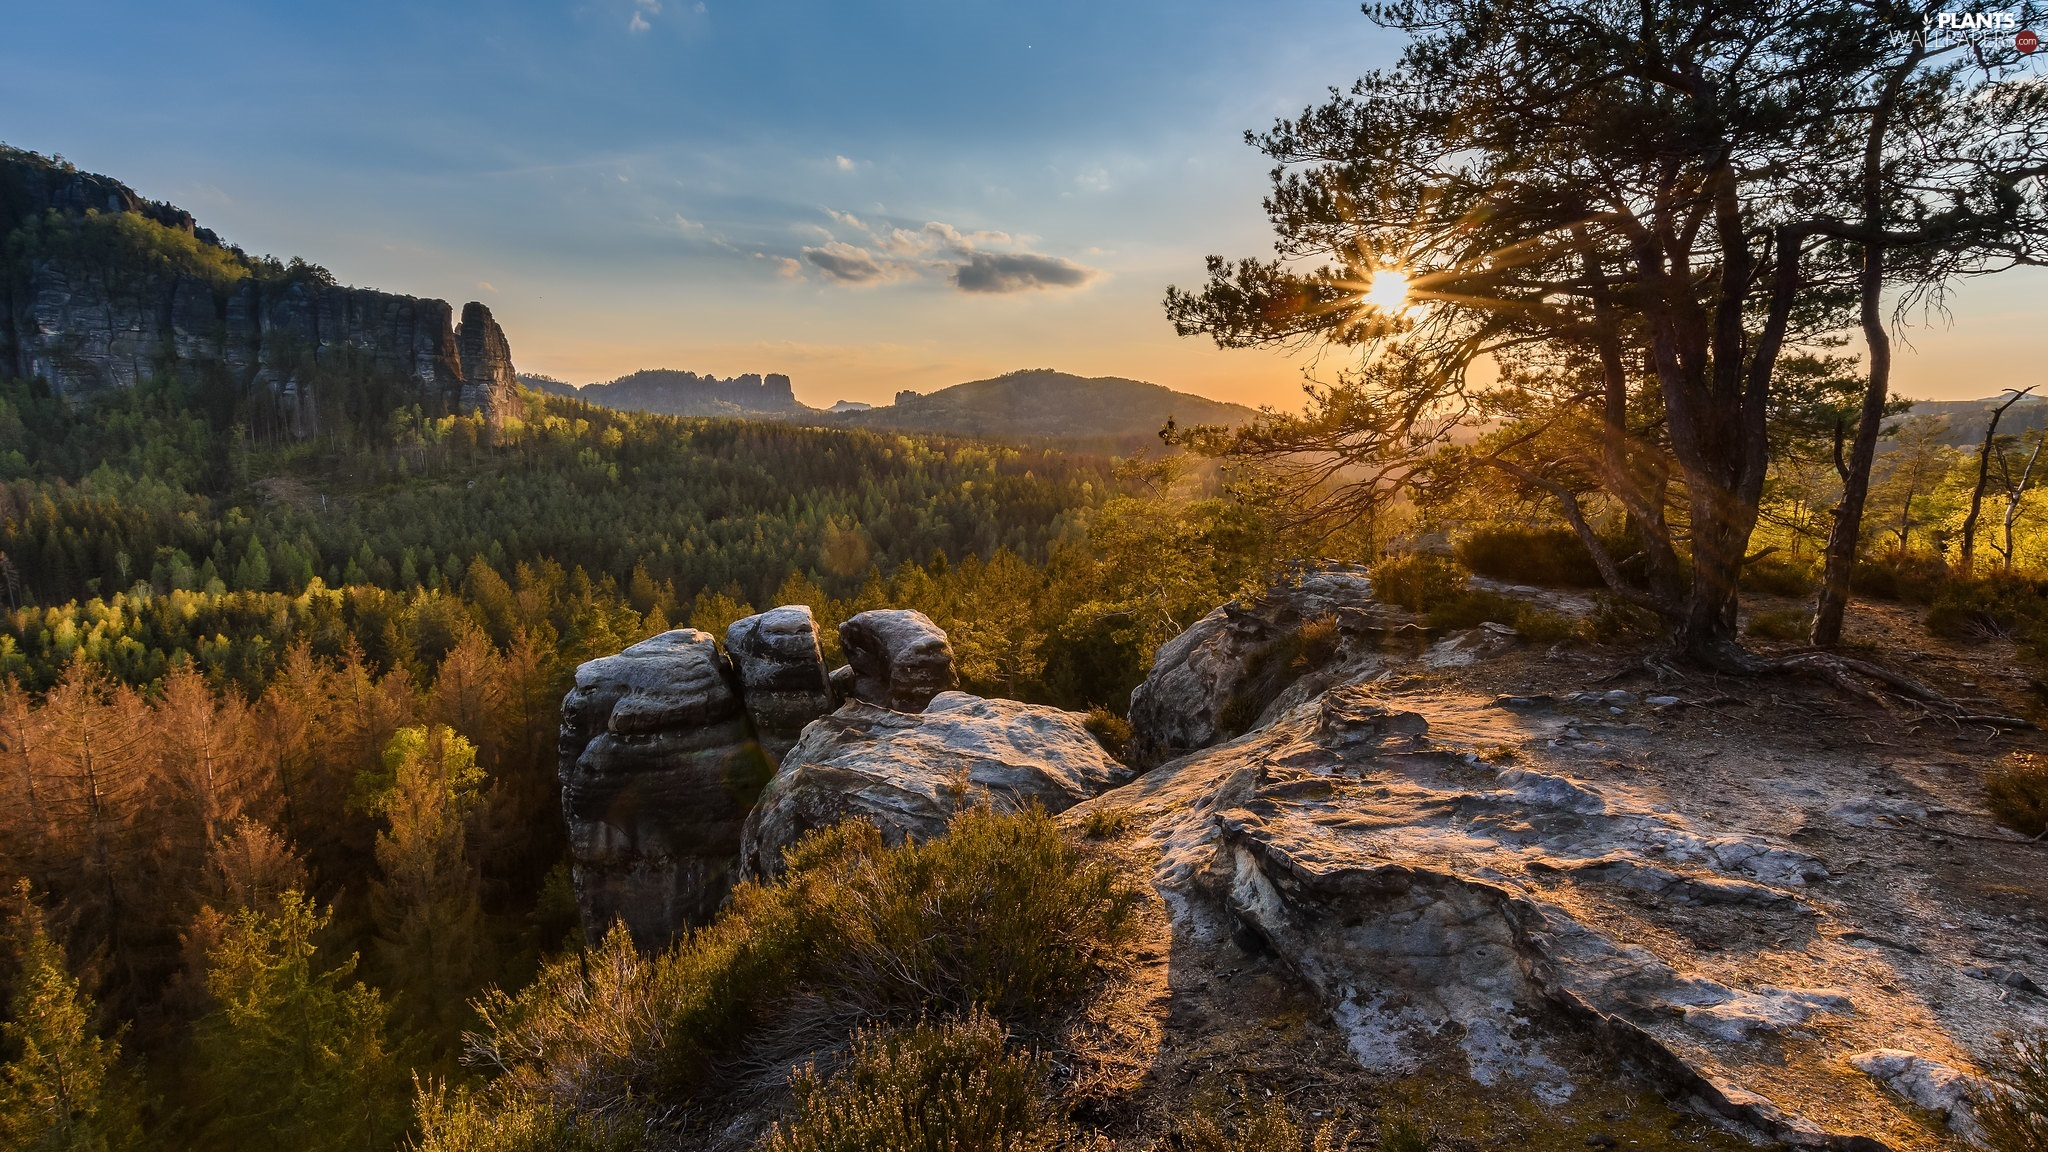 trees, D???nsk? vrchovina, Saxon Switzerland National Park, Germany, viewes, rocks